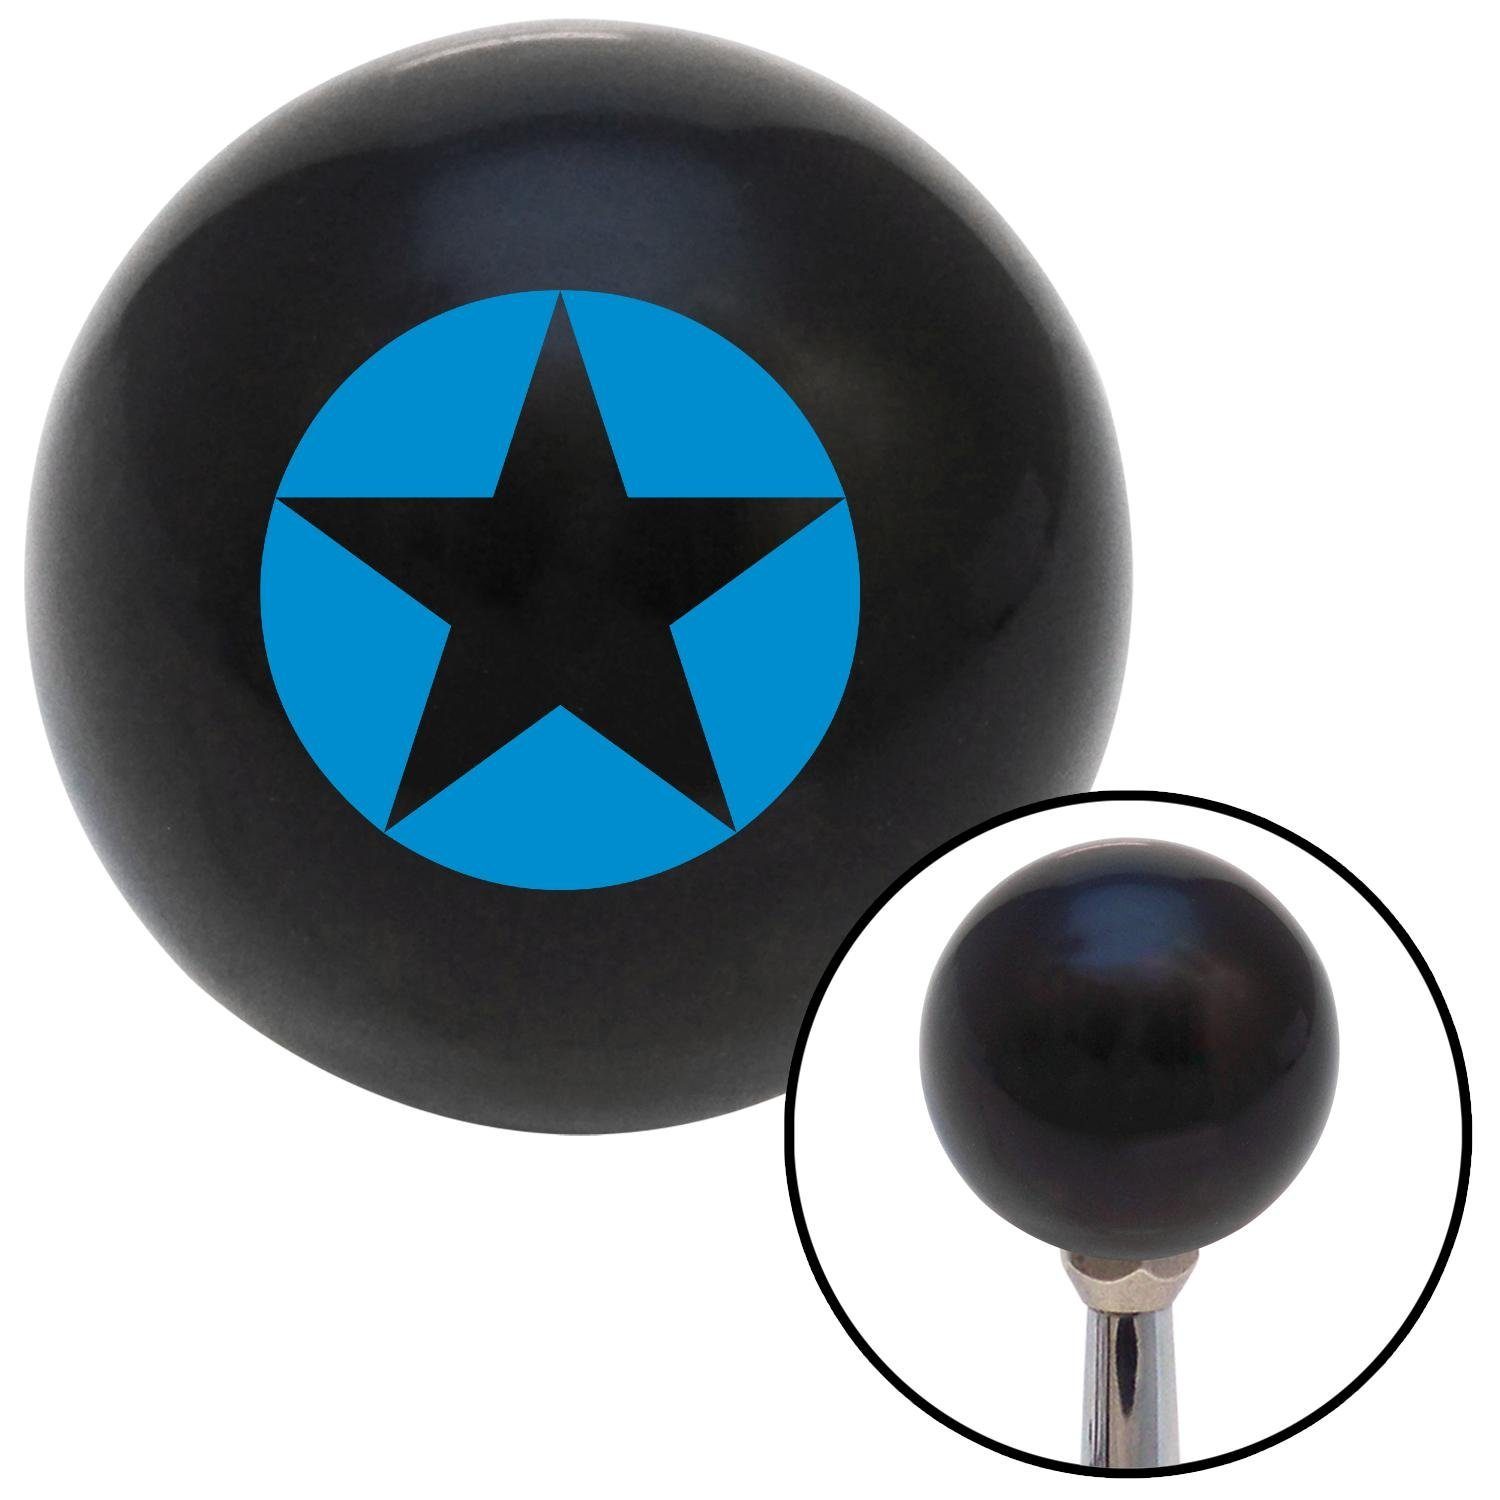 American Shifter 106952 Black Shift Knob with M16 x 1.5 Insert Blue Star in Circle